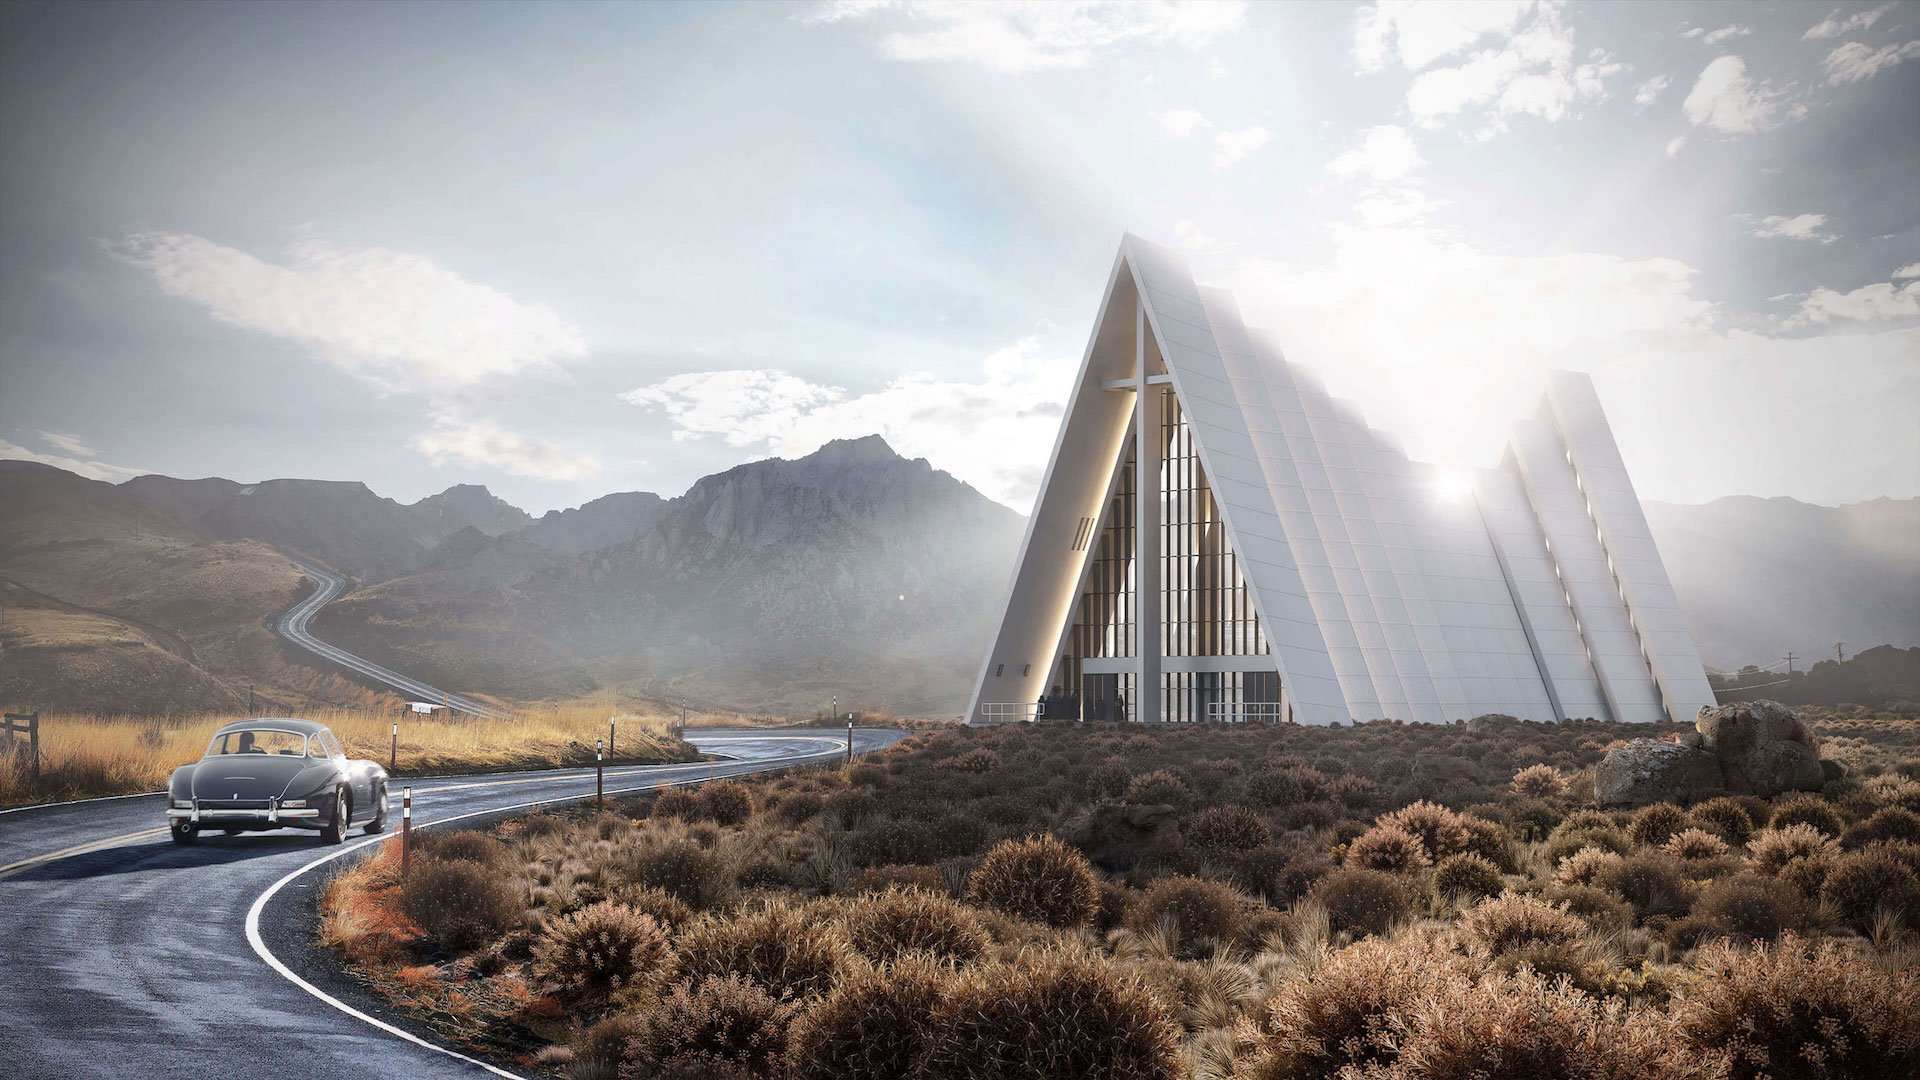 3D Architectural Rendering of a Contemporary Church Design